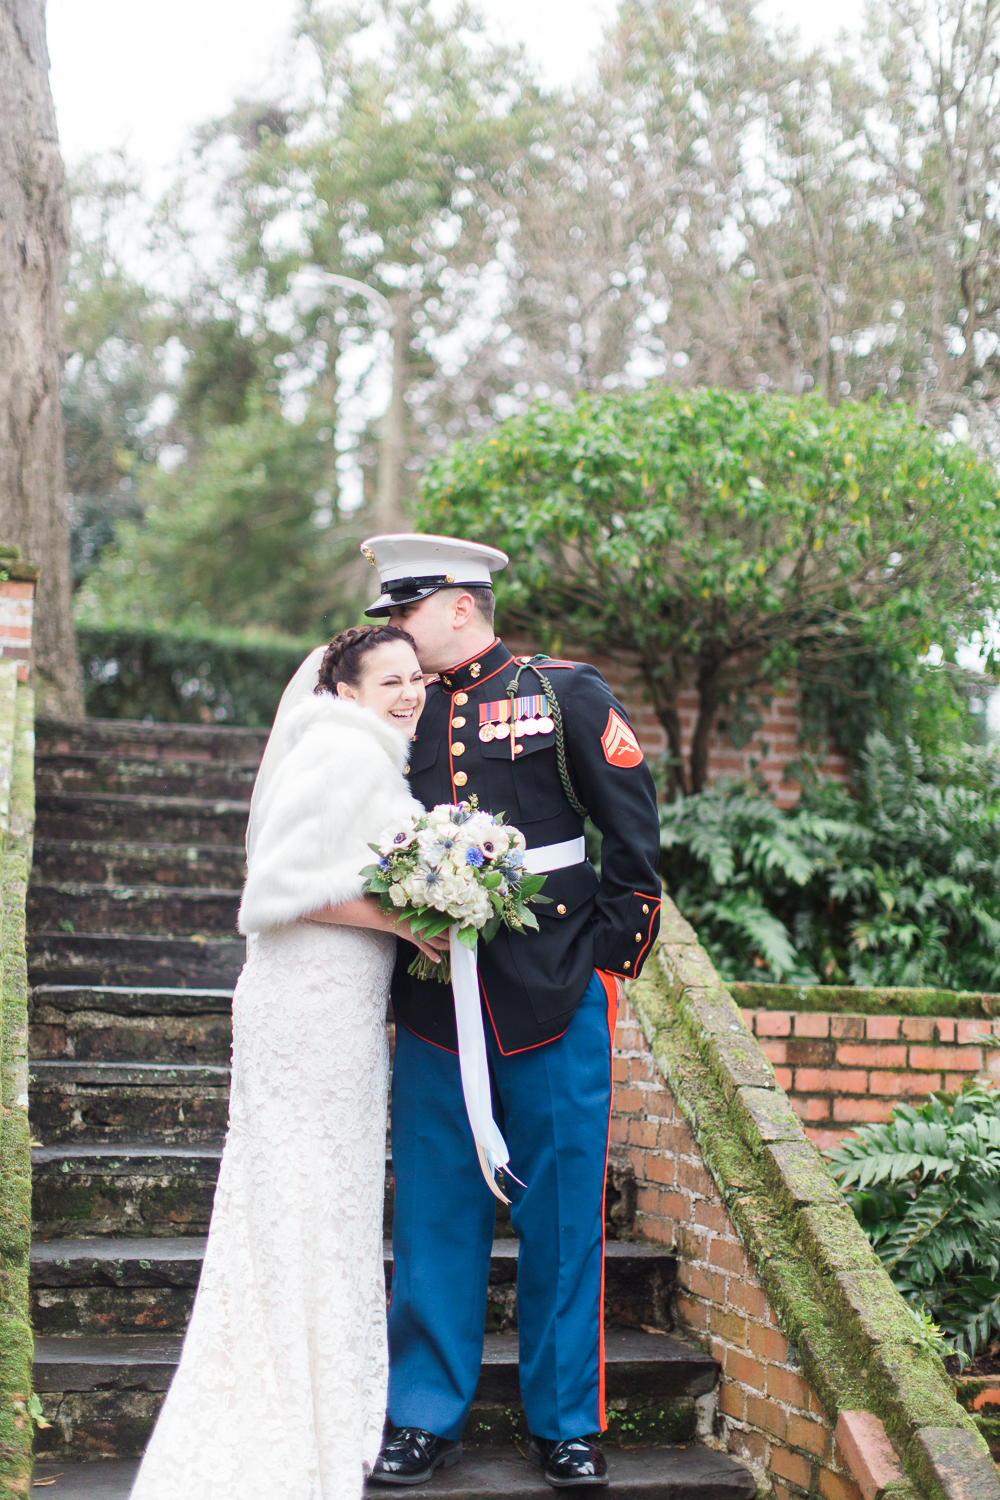 wimingtonnorthcarolinawedding55.jpg